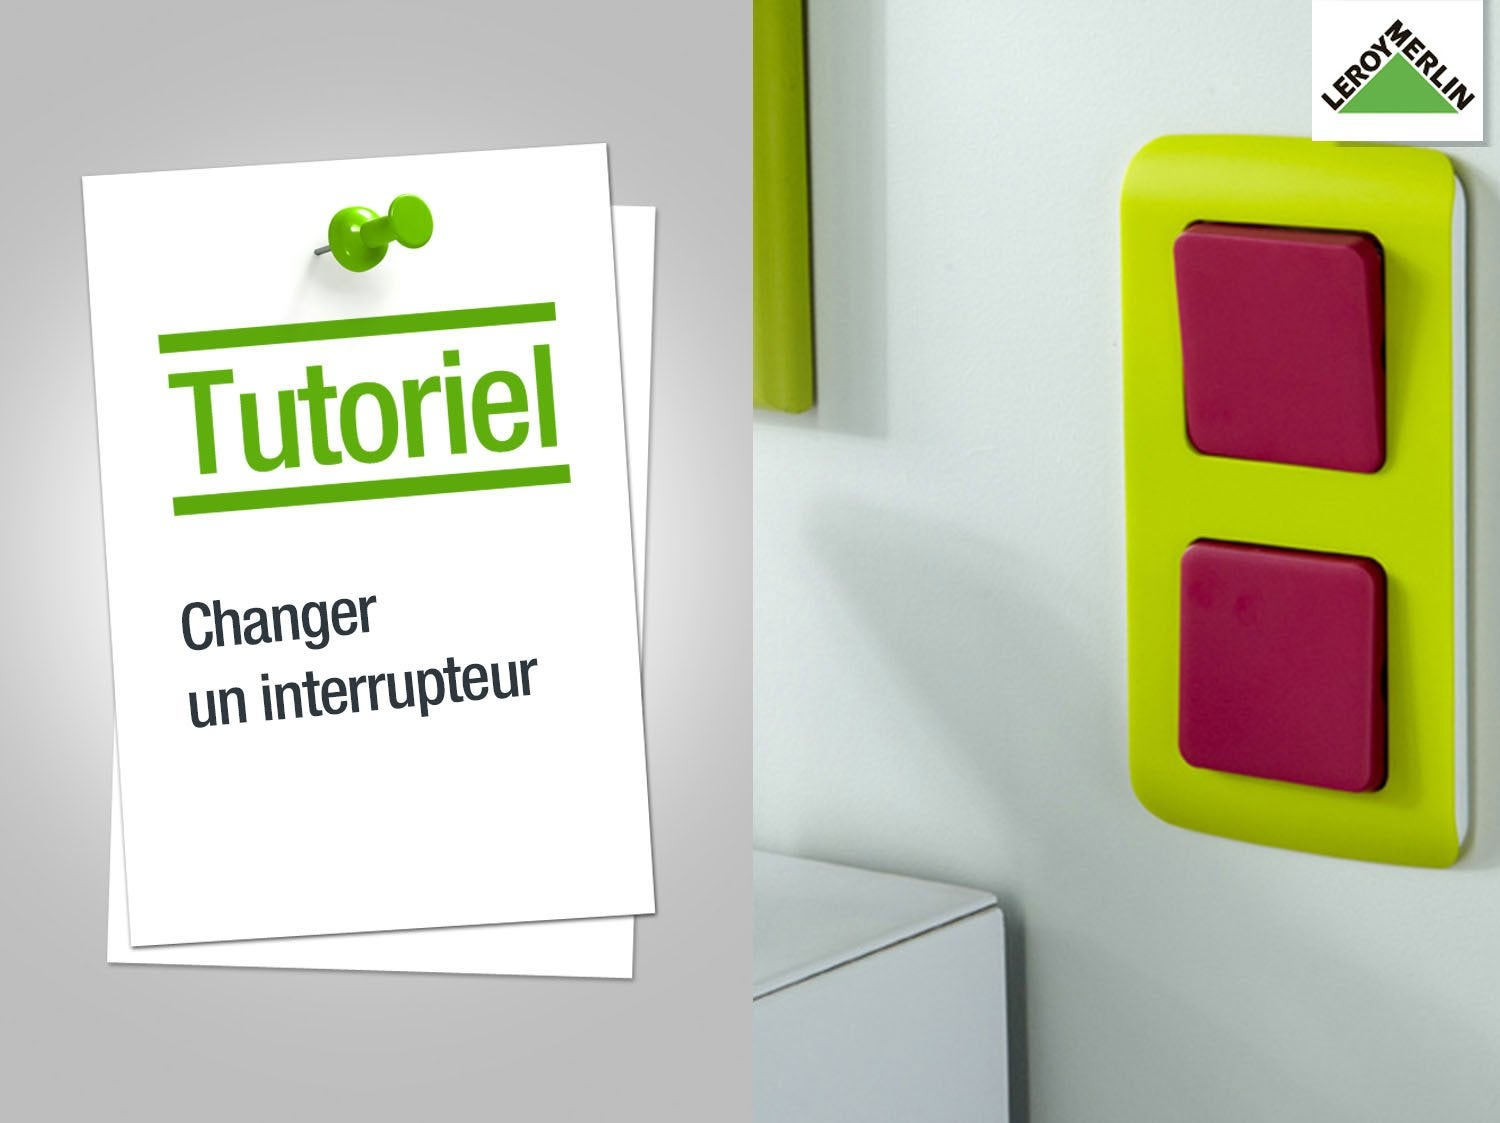 Comment reparer un interrupteur for Monter un va et vient en interrupteur simple